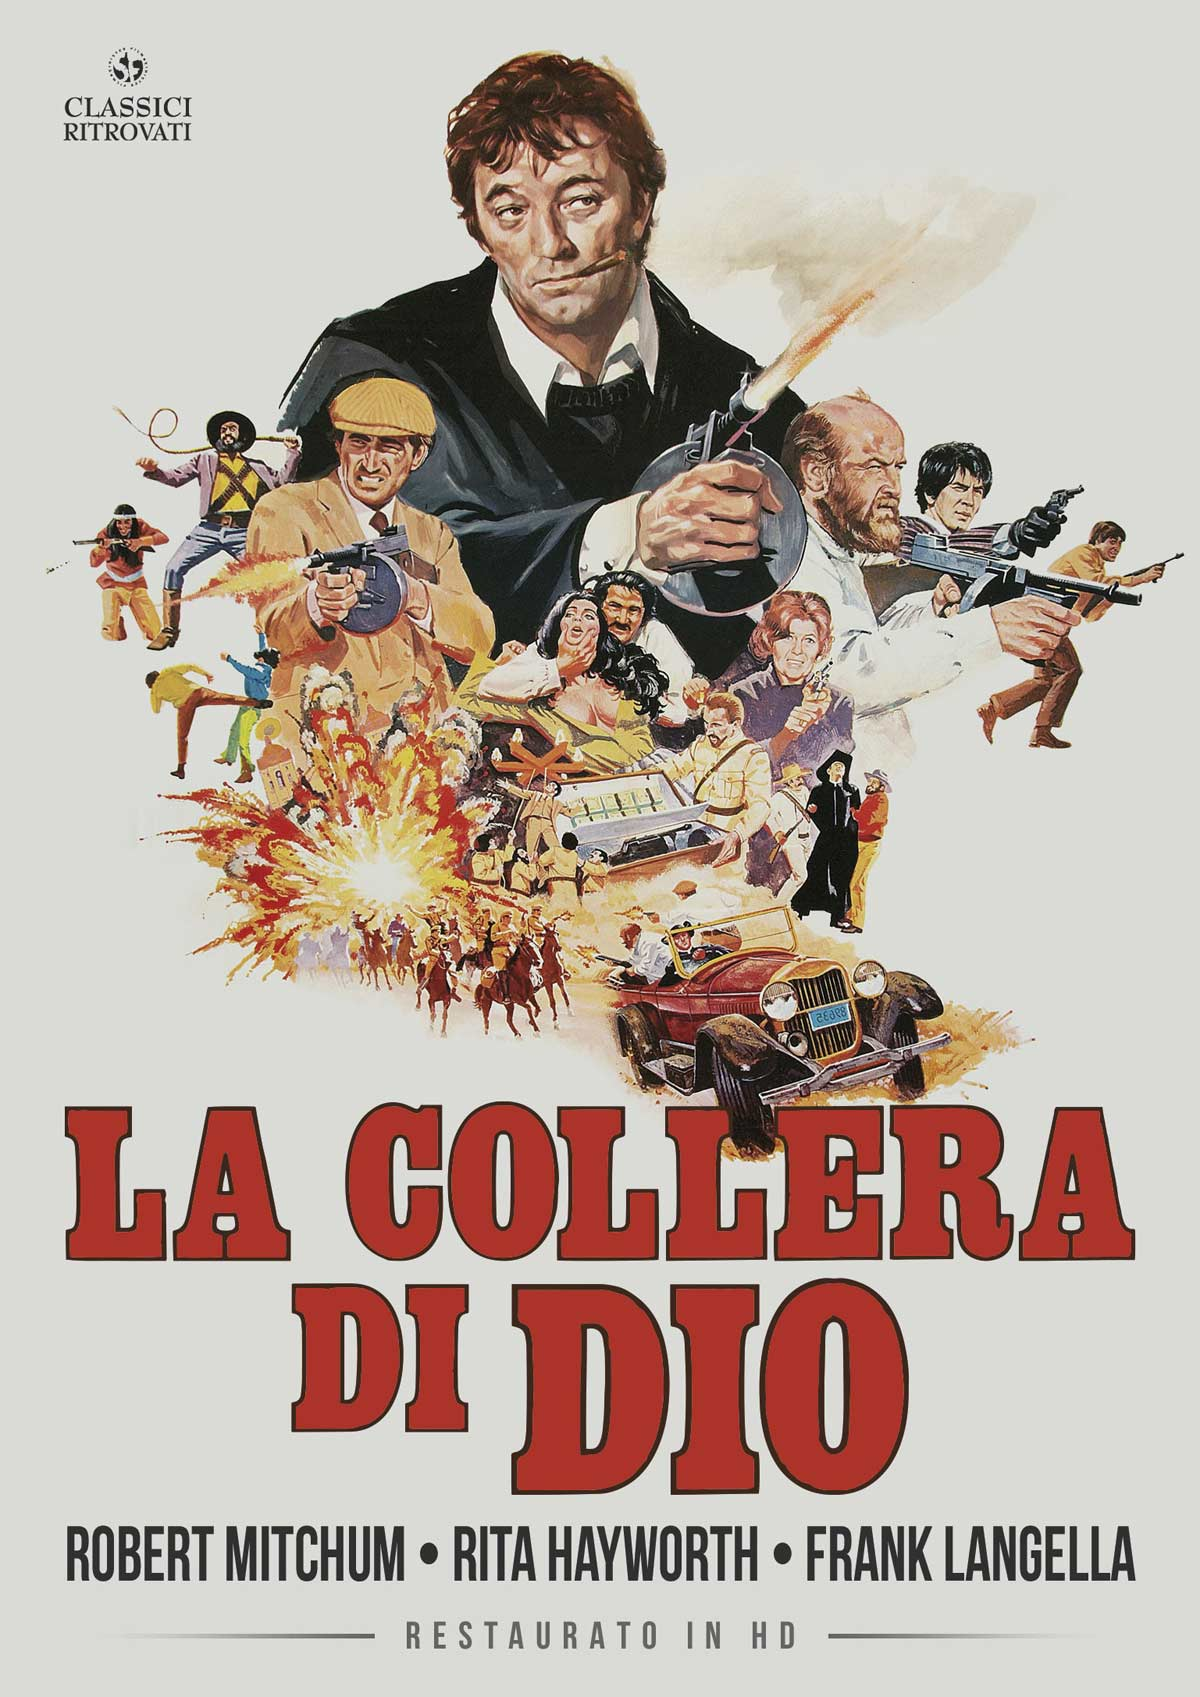 LA COLLERA DI DIO (RESTAURATO IN HD) (DVD)